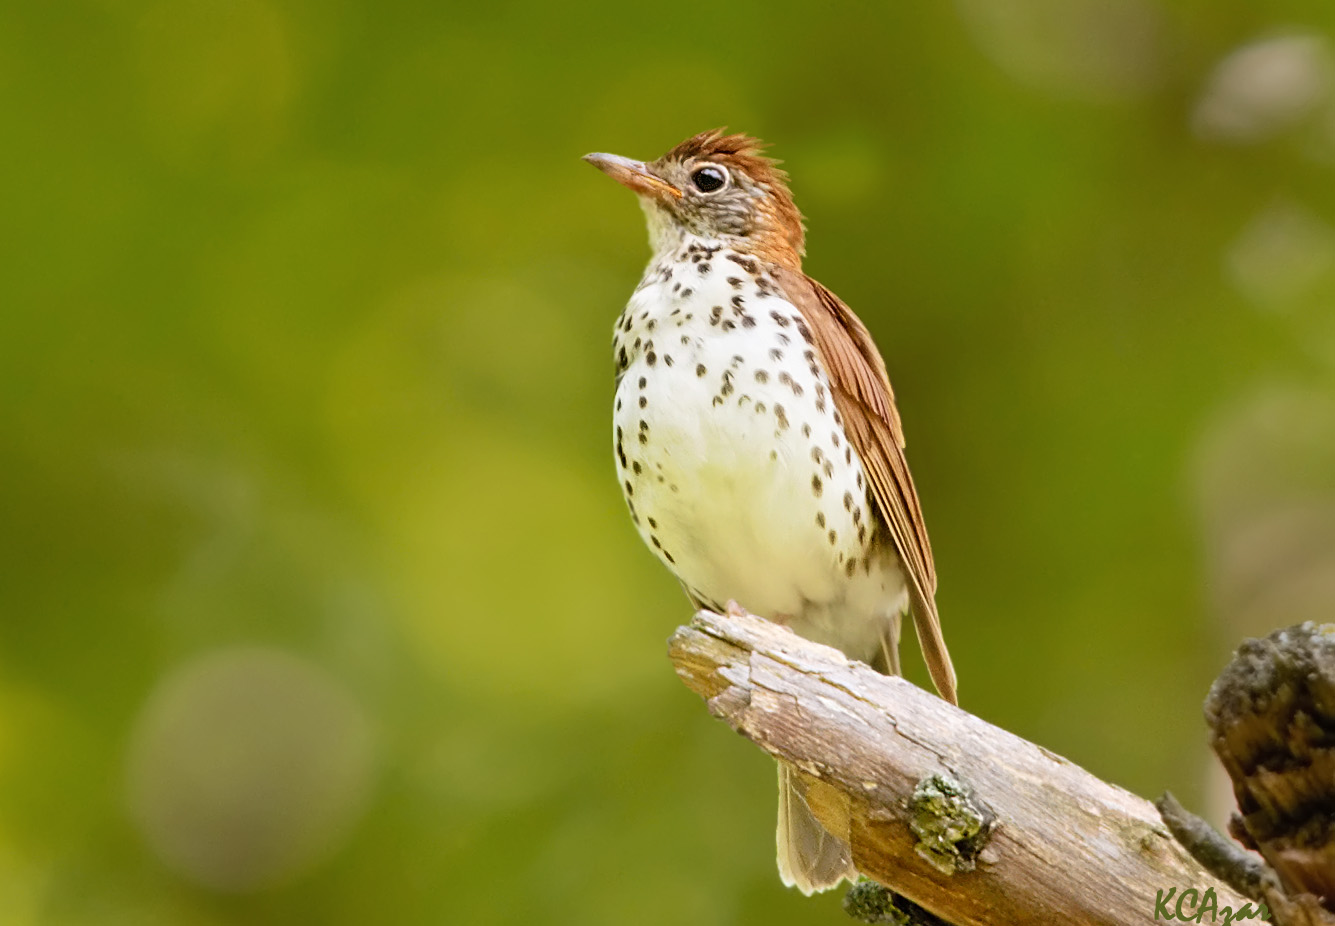 """- Wood Thrush (Hylocichla mustelina)Wood Thrushes live mostly in deciduous or mixed woodlands. Their diet consists of insects of berries, but includes snails before breeding. Their wingspan is 11.8-13.4 in. and they weigh 1.4-1.8 oz. Wood Thrushes sing """"ee-oh-lay"""" where the """"lay"""" part is trilled. They are protected on the US Migratory Bird list.Photo Credits: Kelly Colgan Azar"""